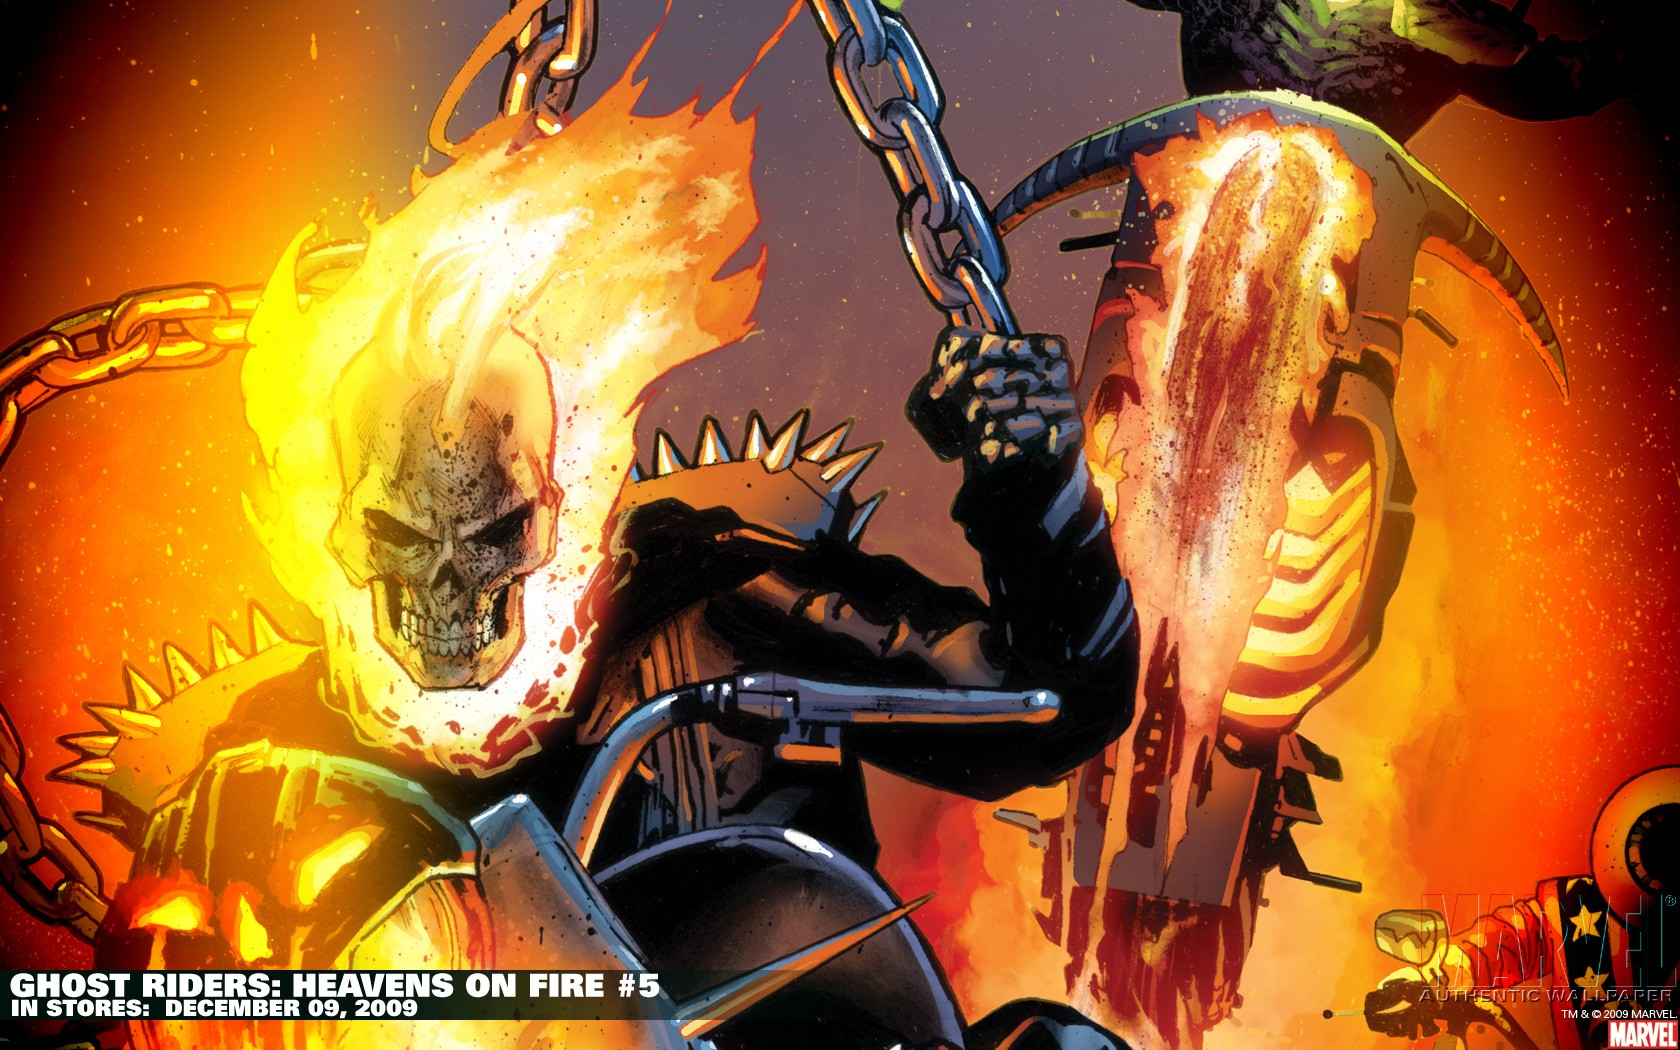 Ghost Rider Wallpaper 1680x1050 Ghost Rider Marvel Comics 1680x1050